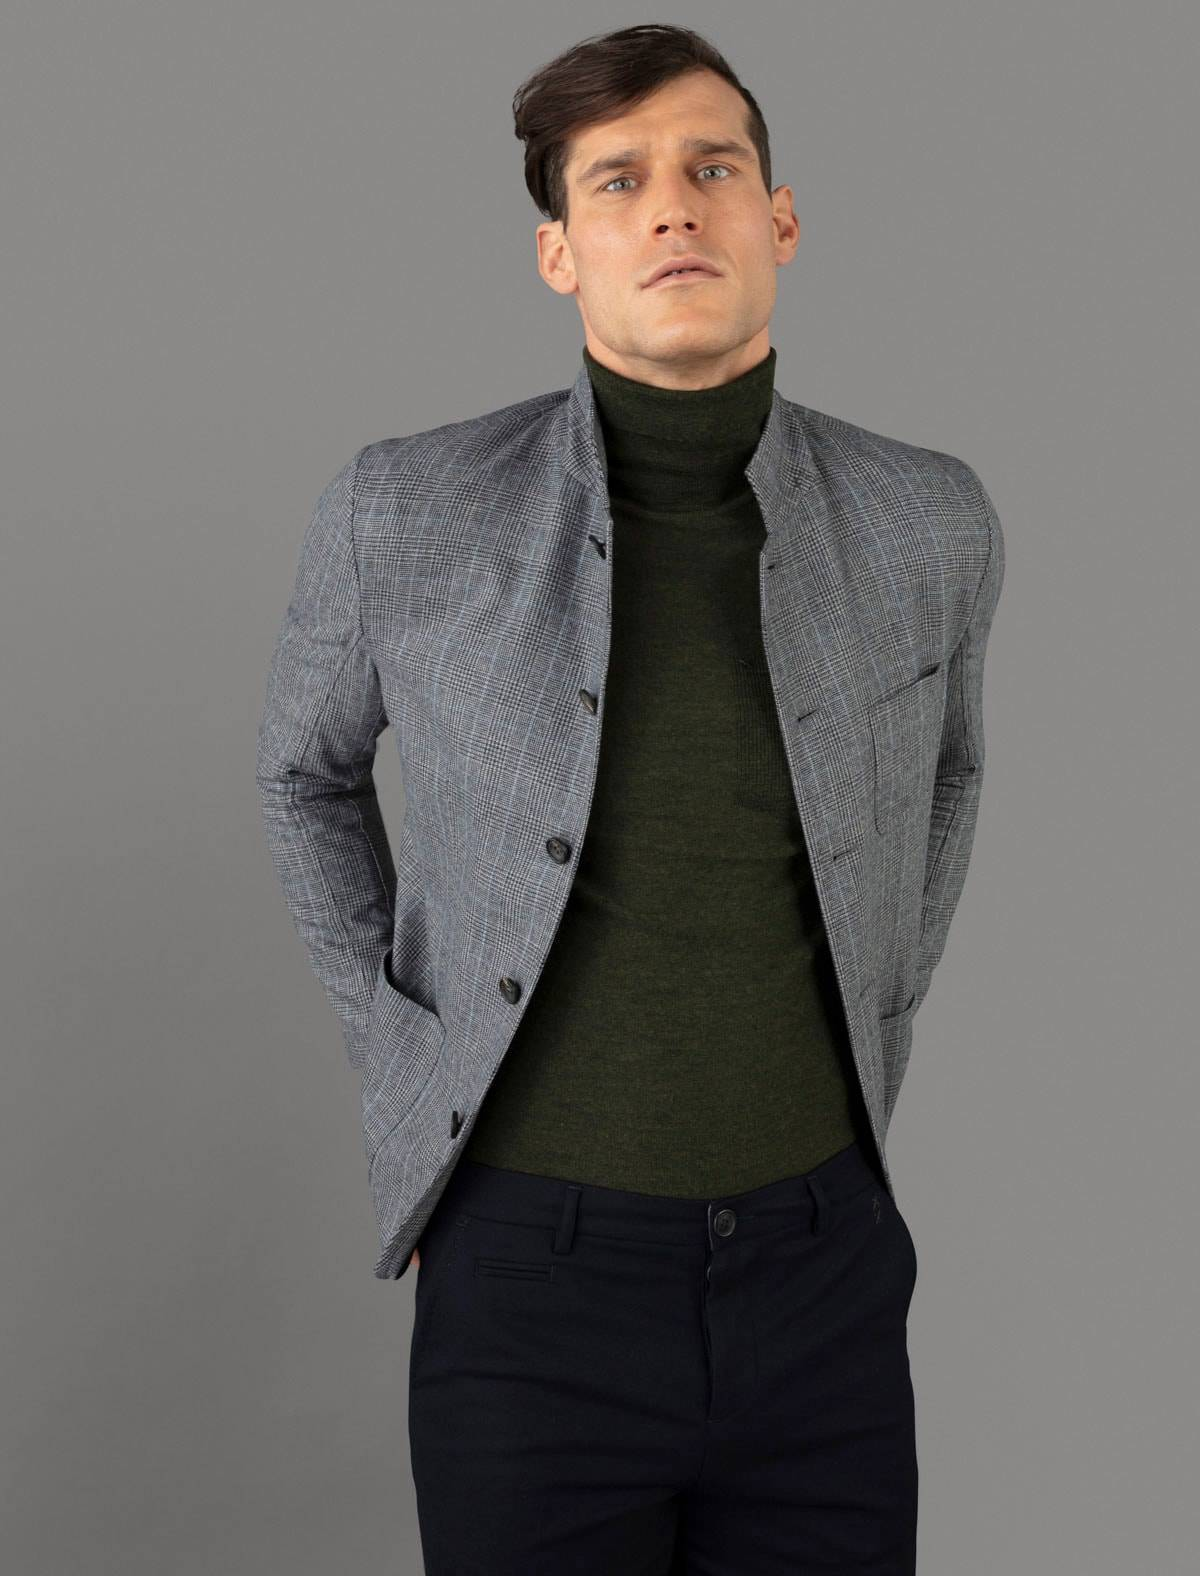 Men's clothing brands to watch out for